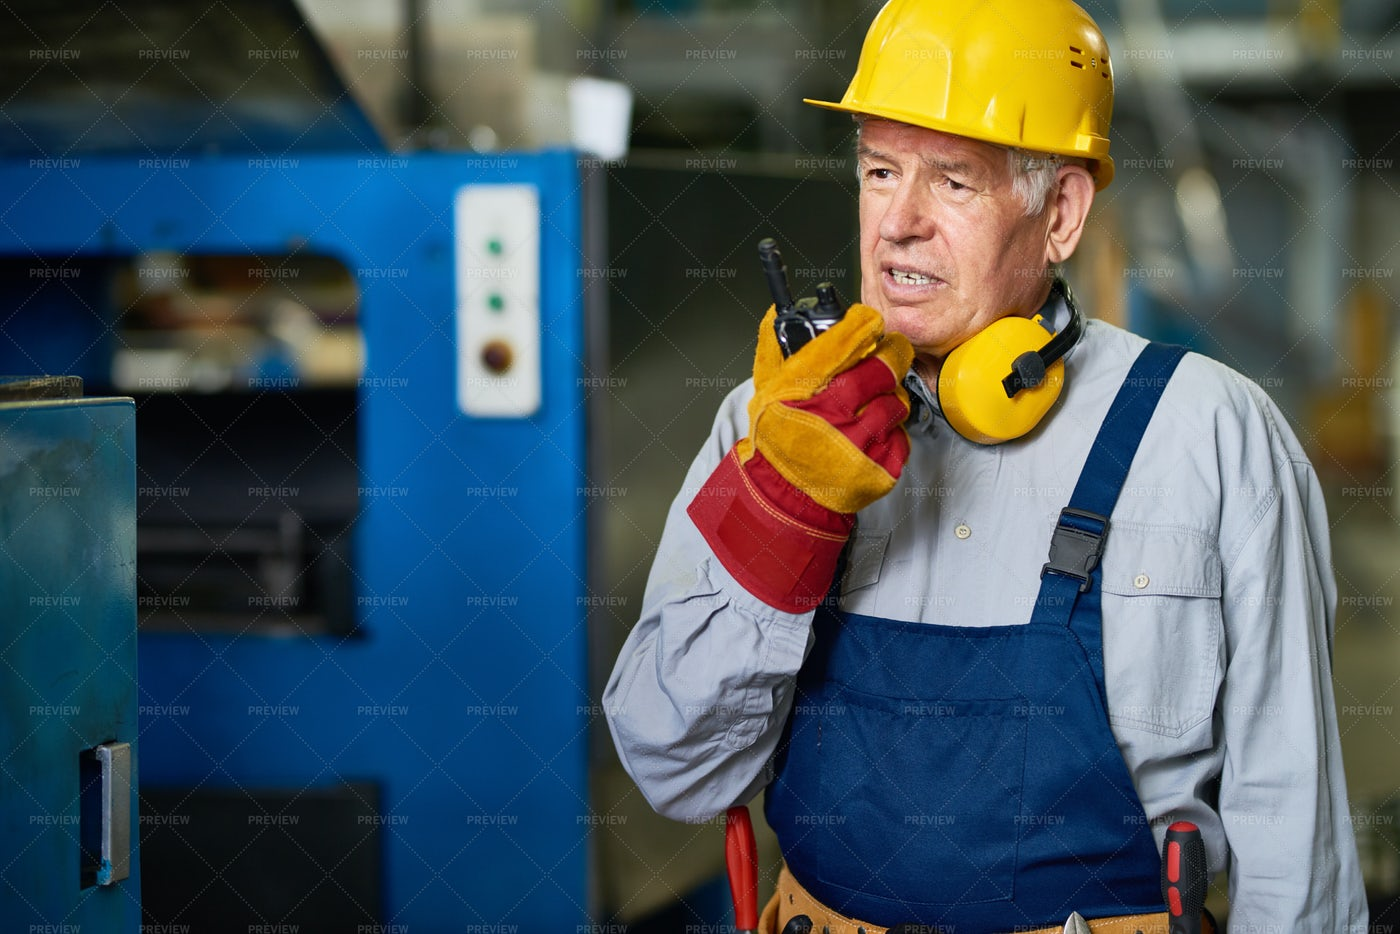 Factory Foreman Speaking By Radio...: Stock Photos